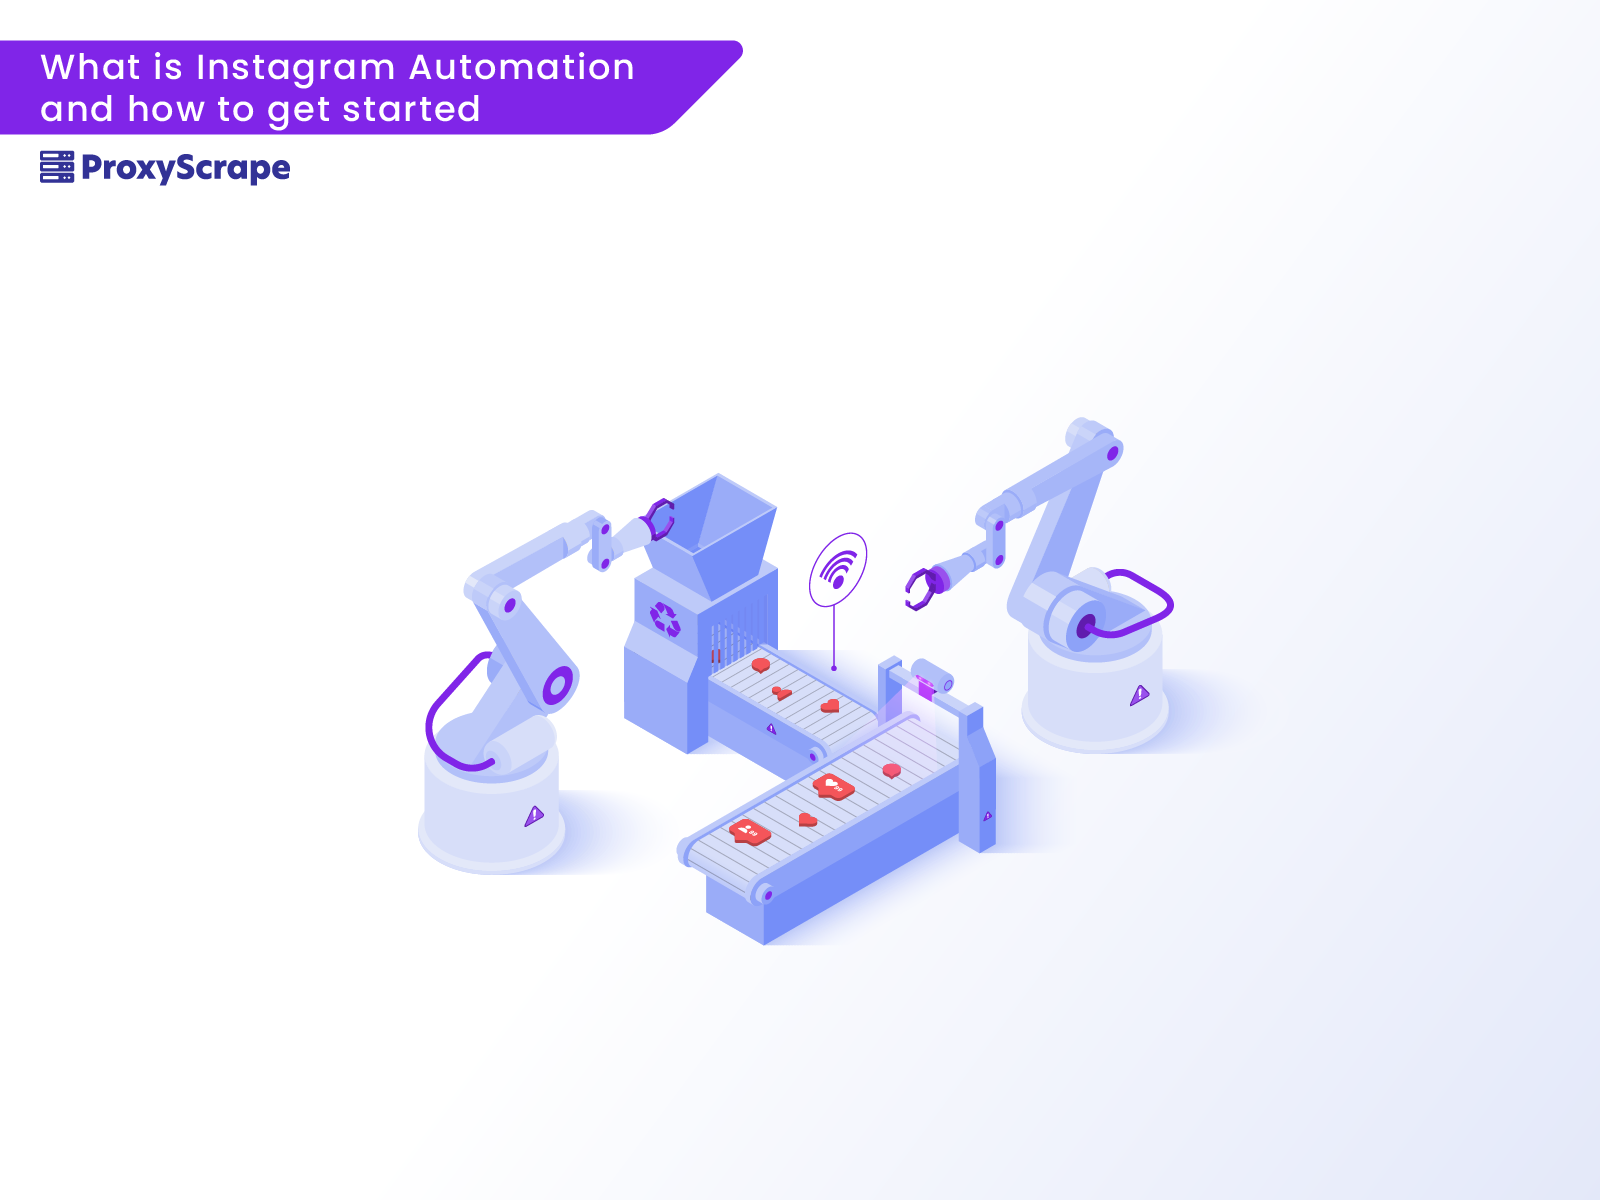 What is Instagram Automation and how to get started